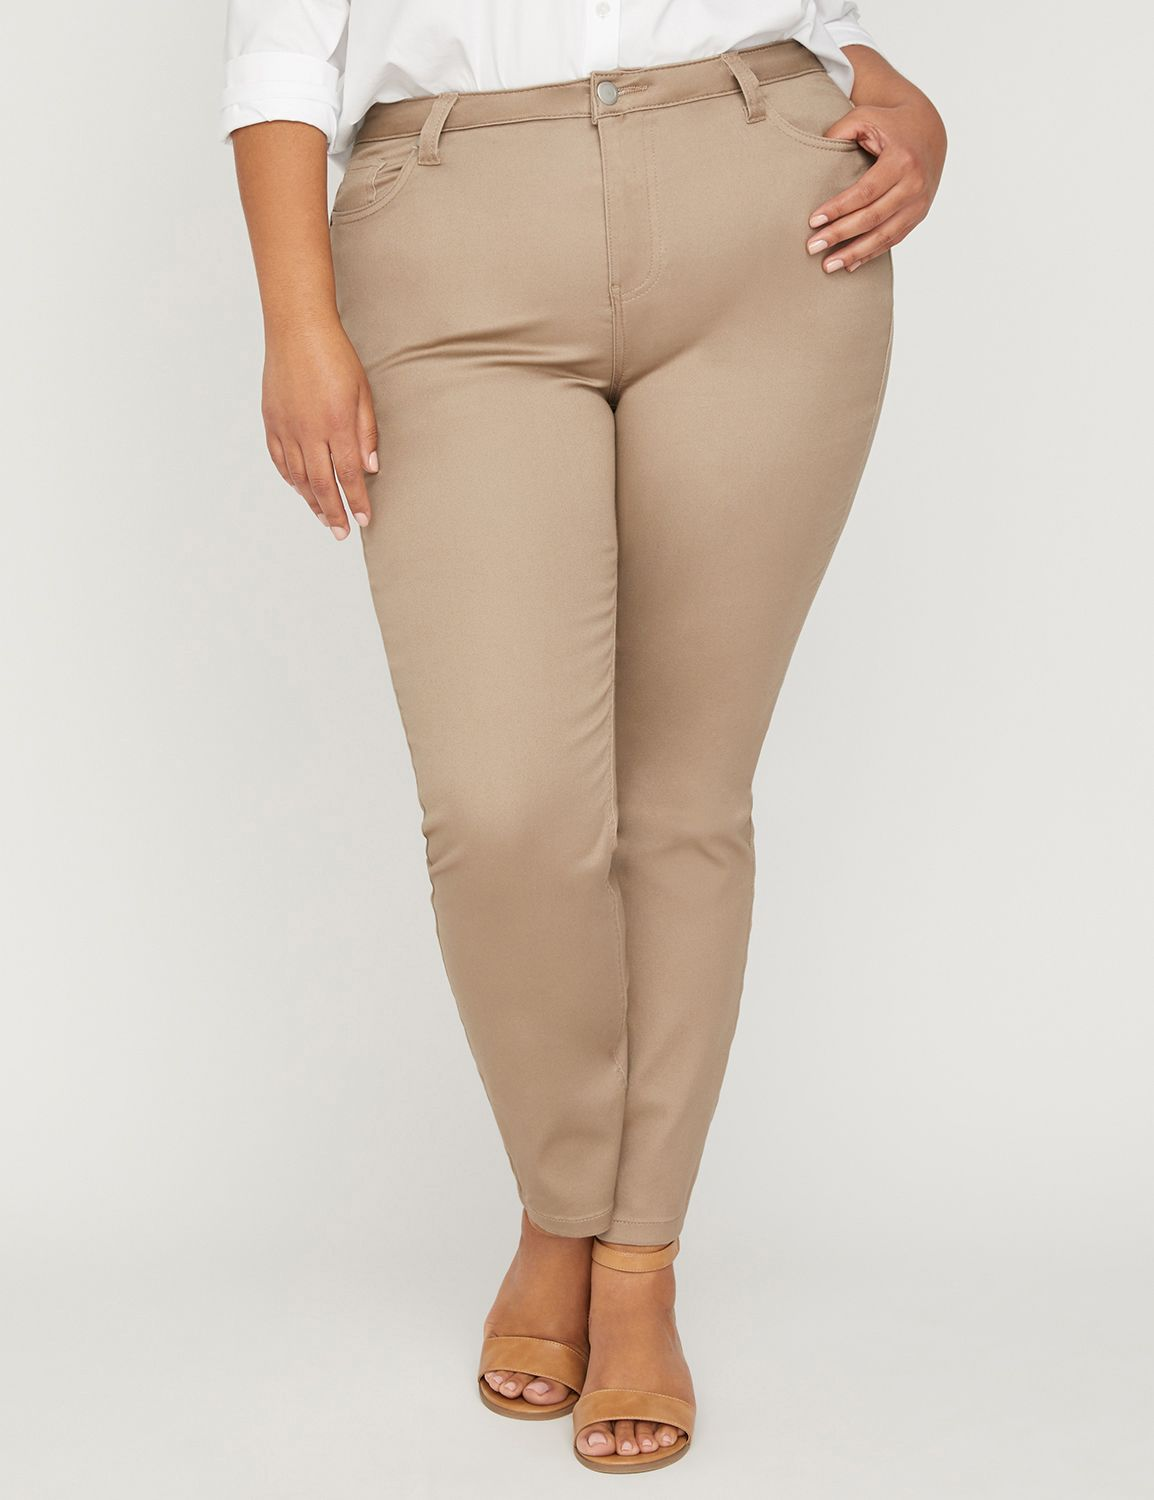 Modern Sateen Stretch Pant Done MP-300083779